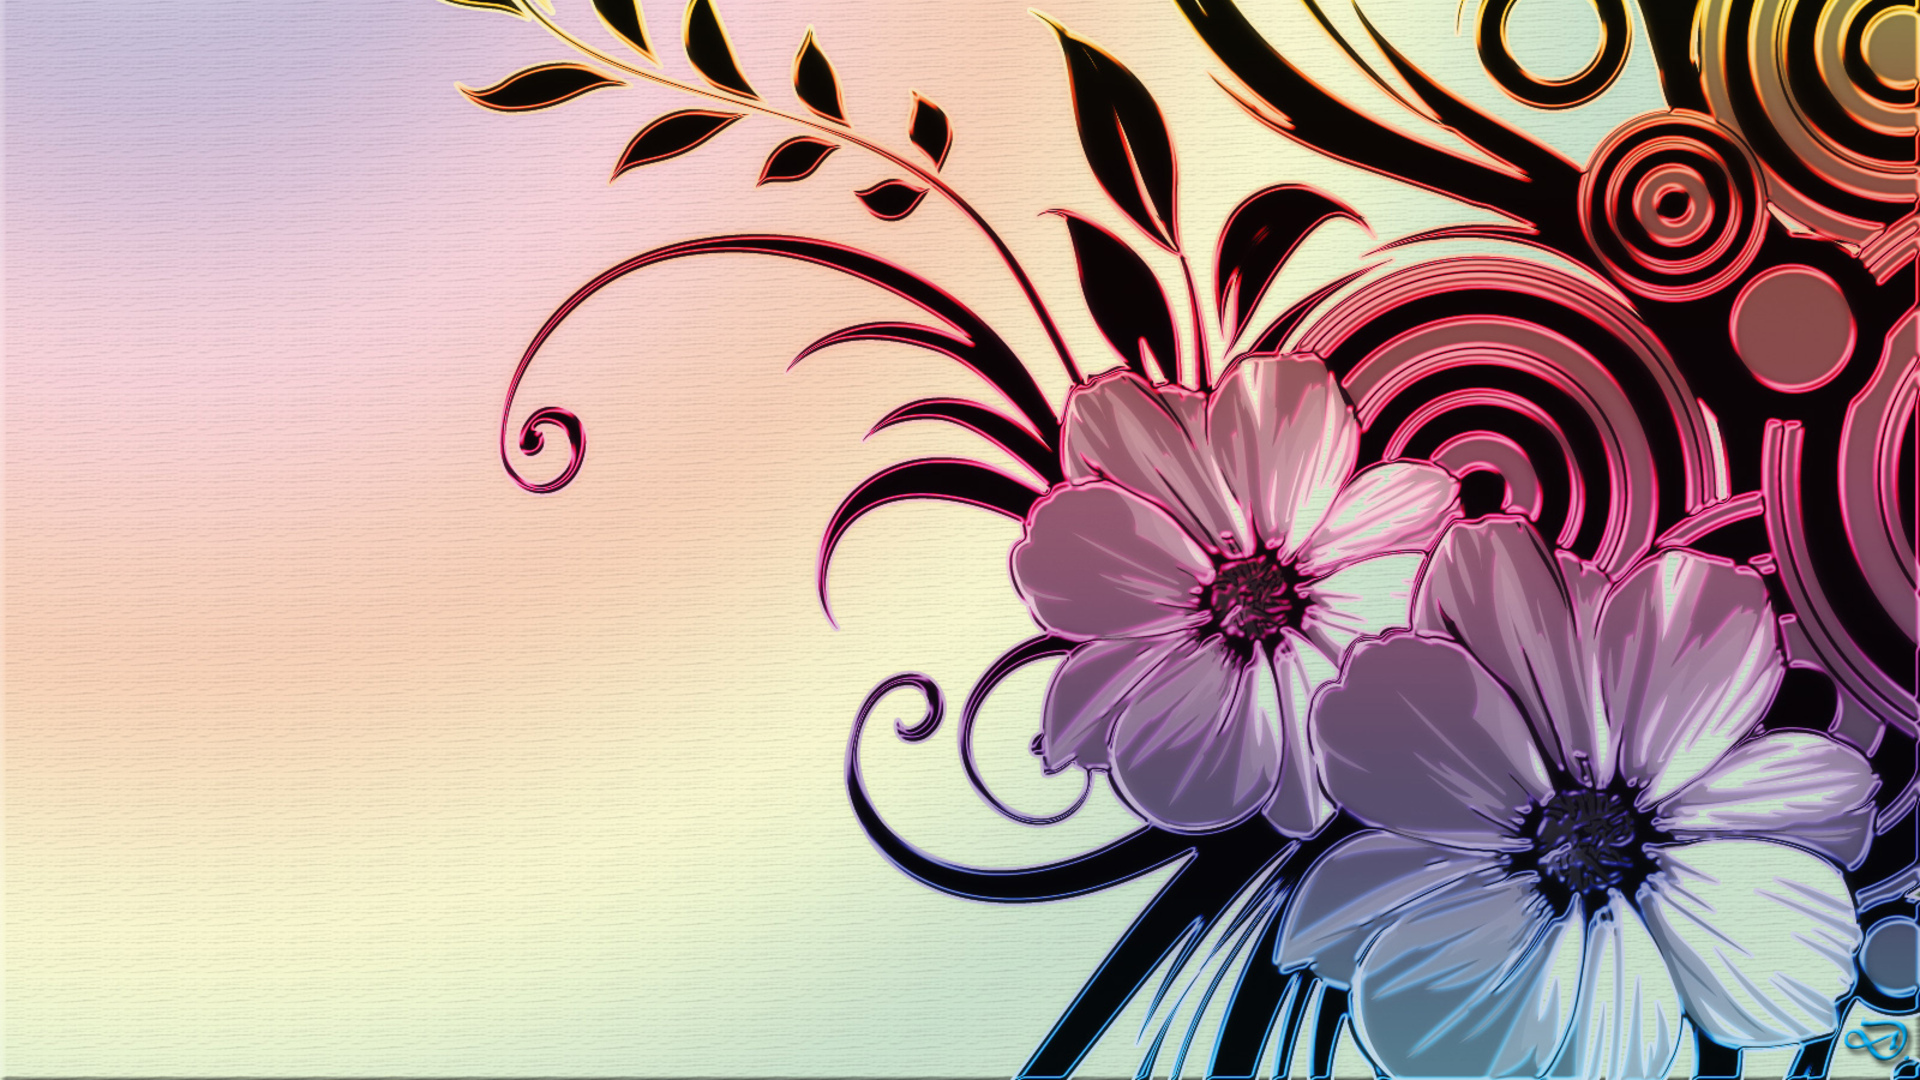 Wallpaper Design Download